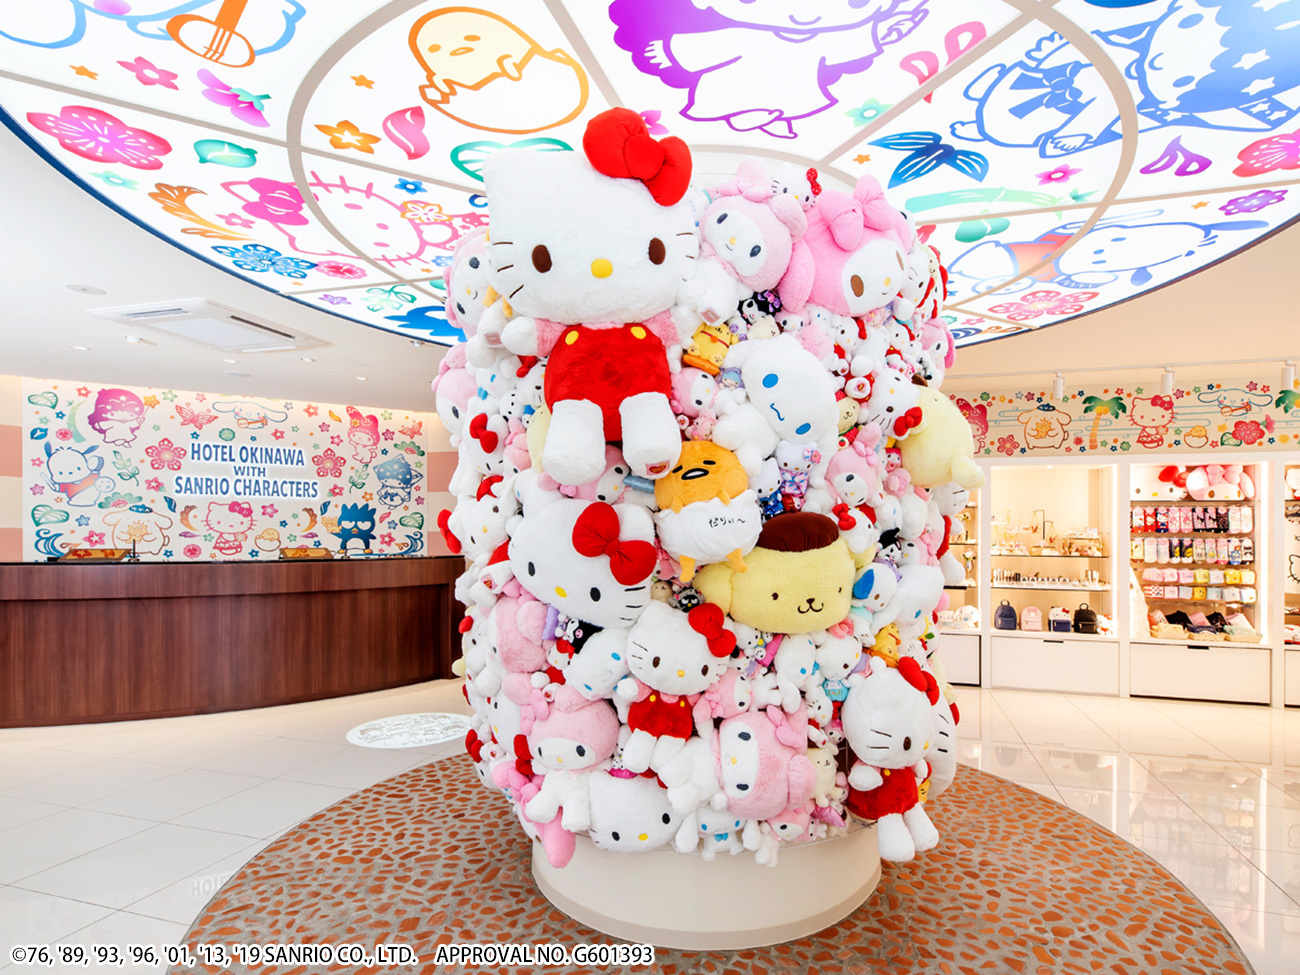 Sanrio characters room [attributive plan]